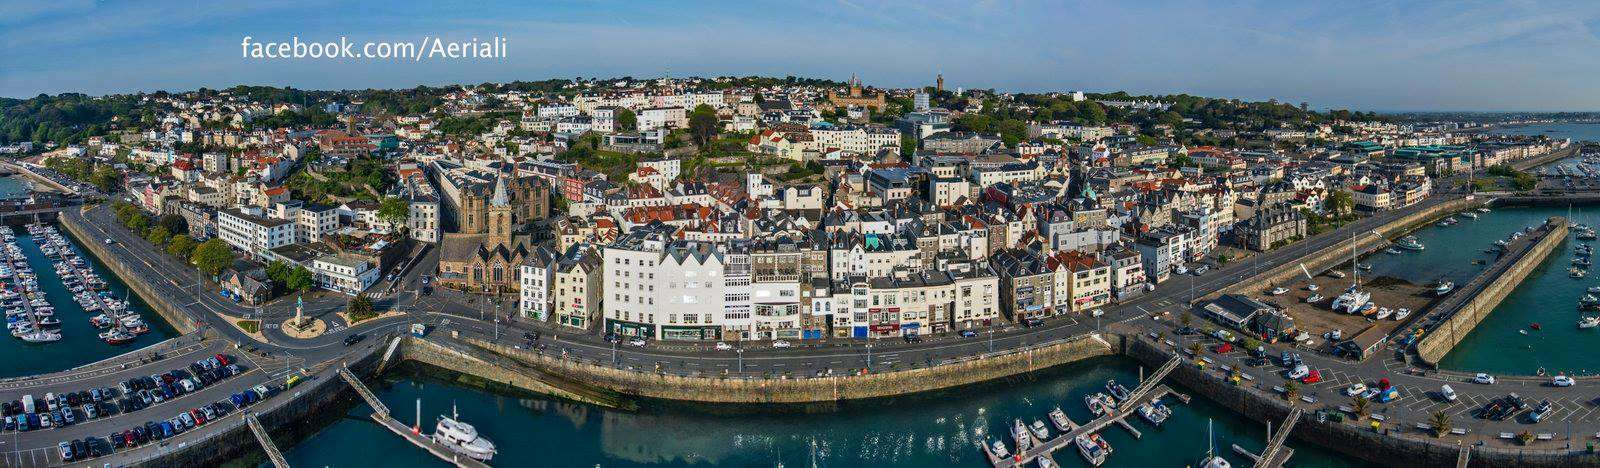 St Peter Port central seafront by Aerial-i